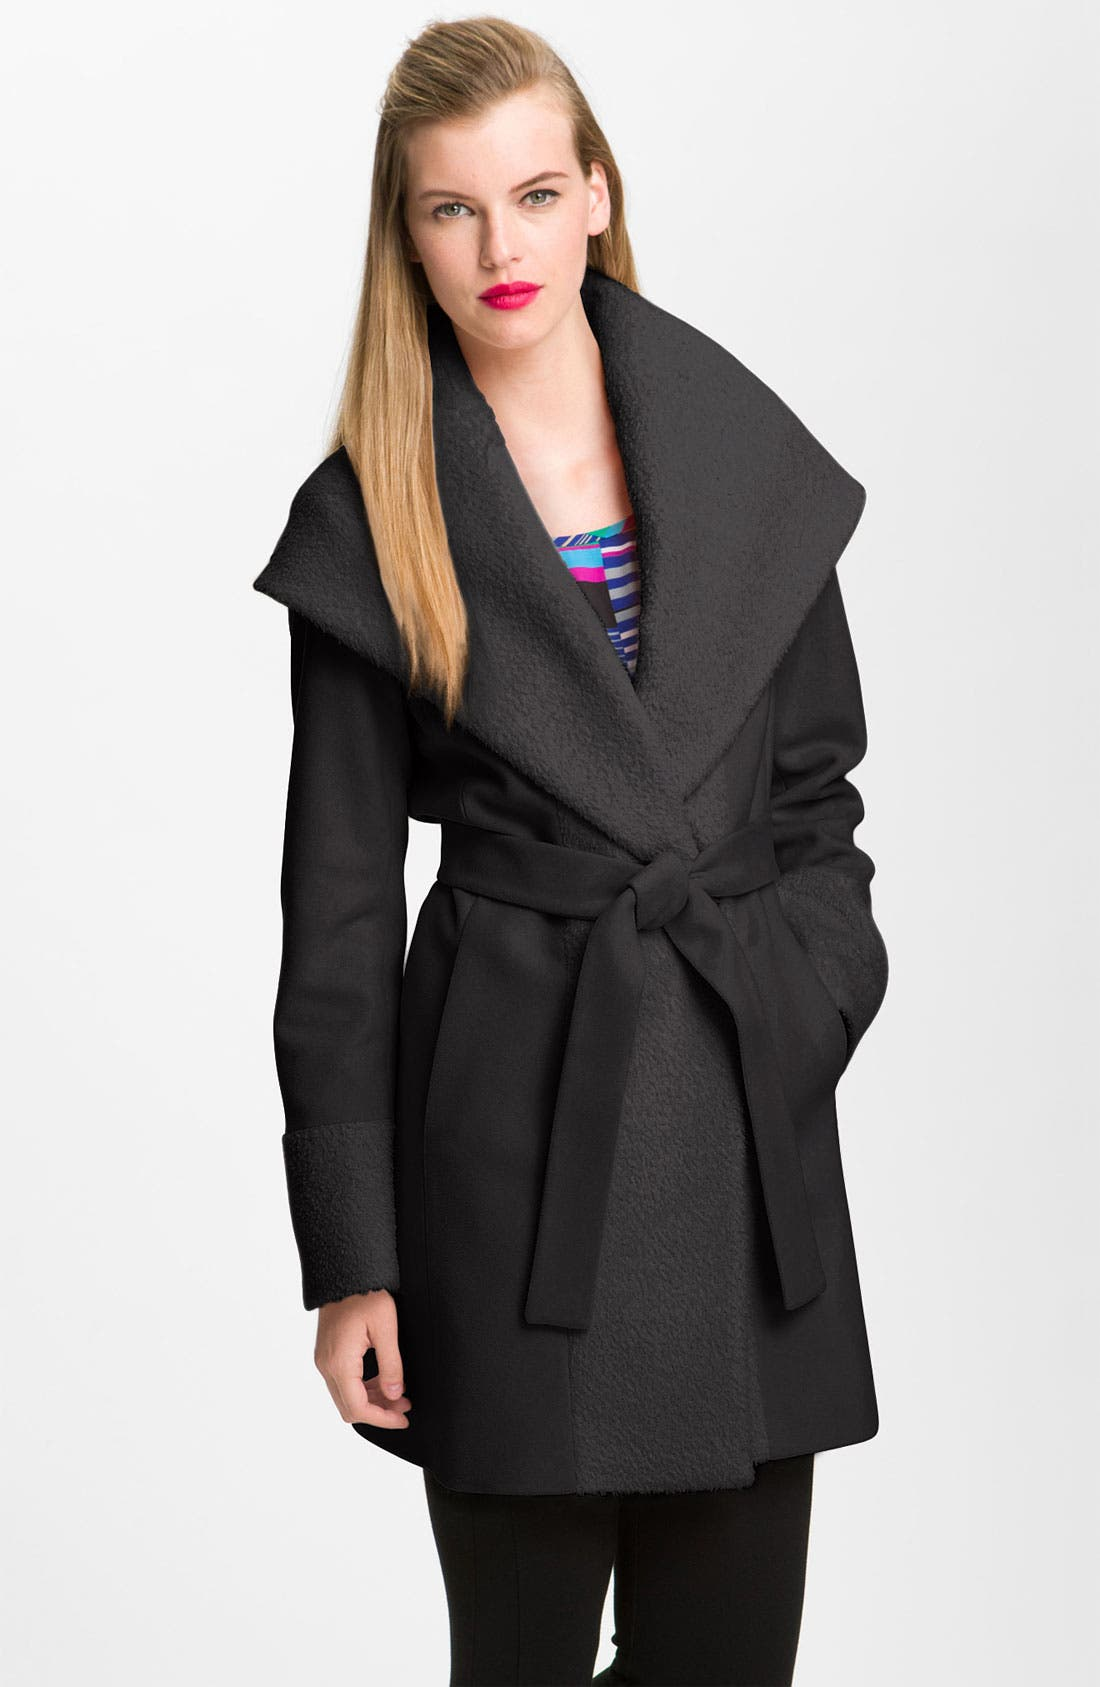 Alternate Image 1 Selected - Trina Turk Wool & Alpaca Blend Wrap Coat (Online Exclusive)